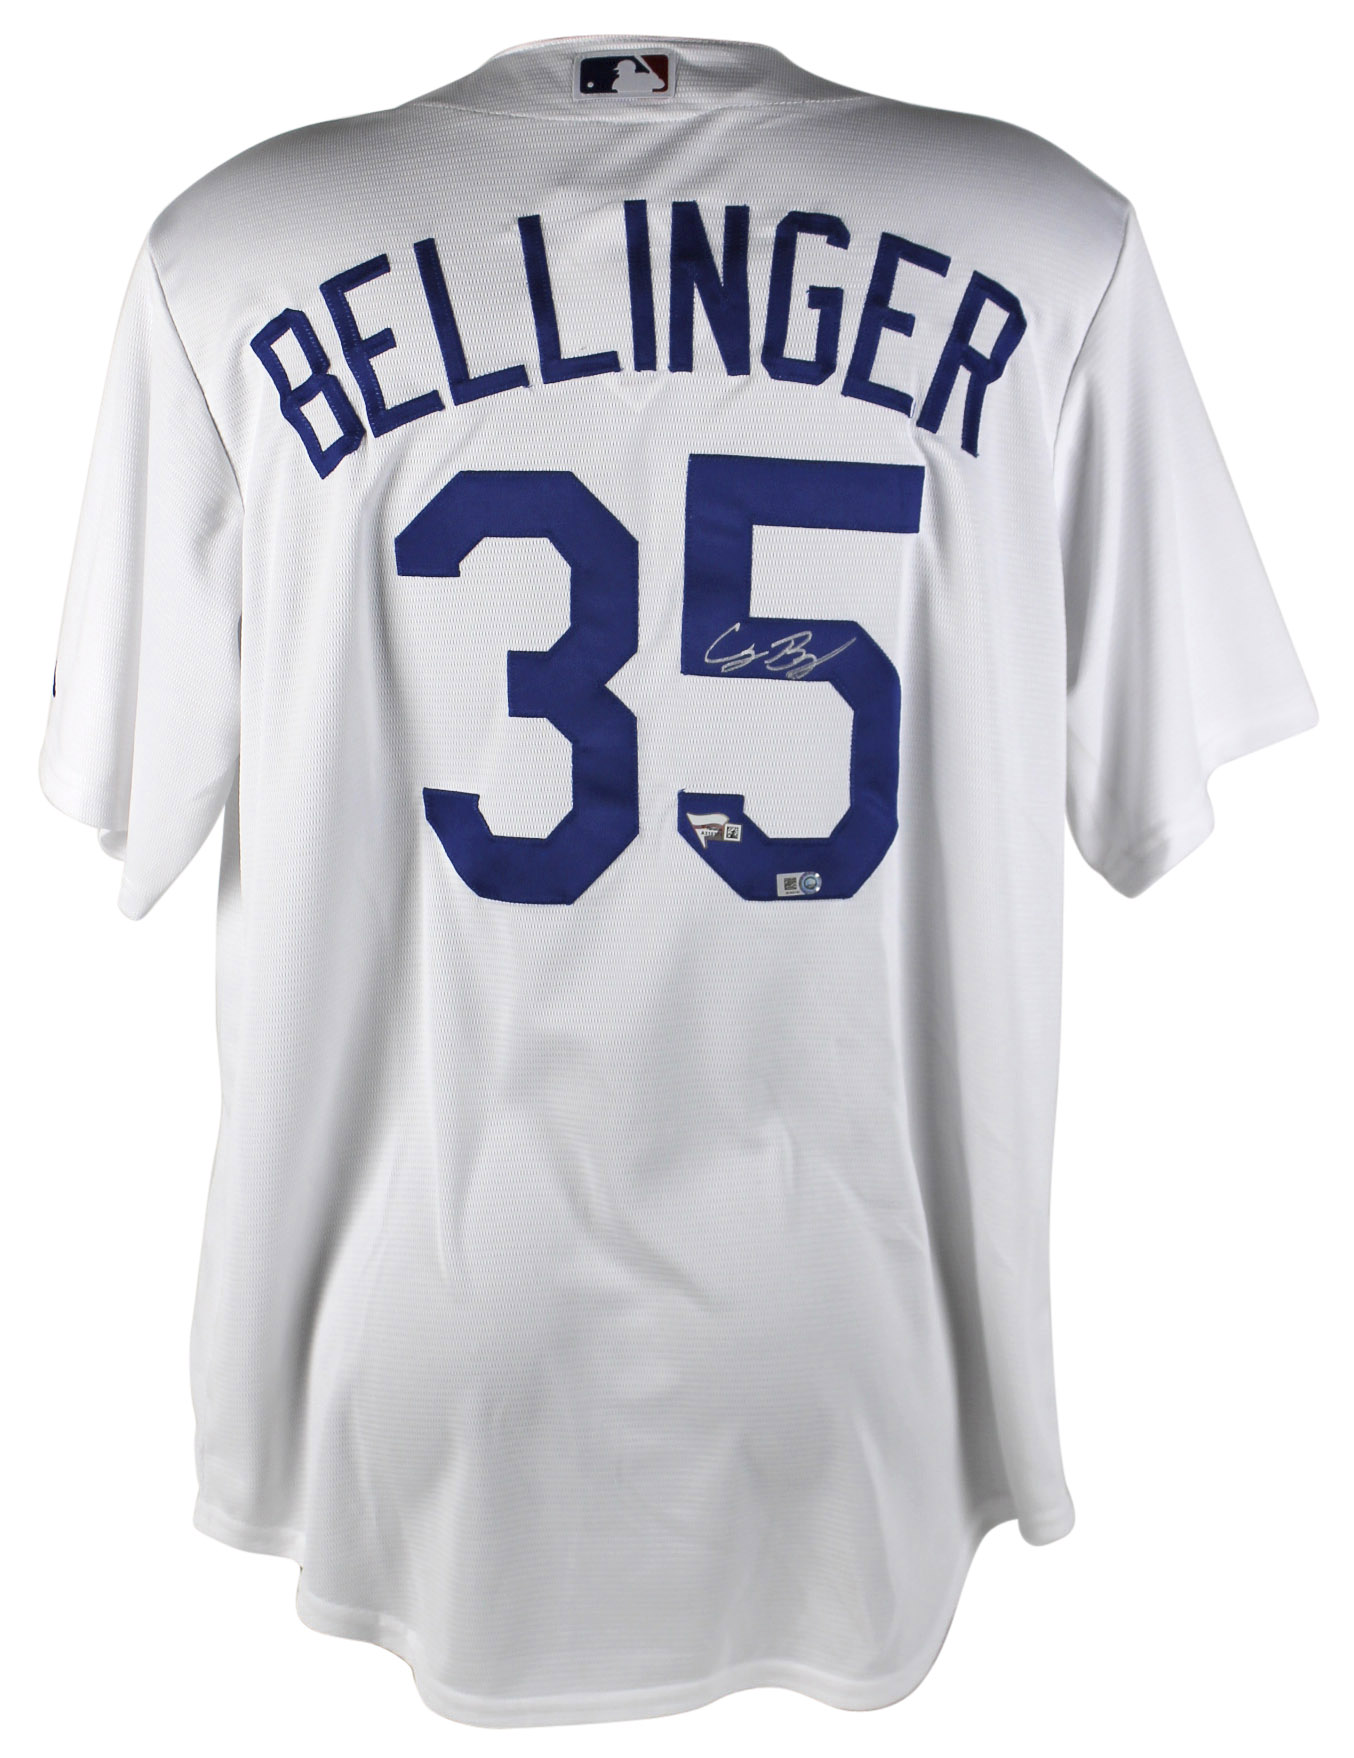 Details about Dodgers Cody Bellinger Signed White Majestic Coolbase Jersey  MLB   Fanatics 50c011f452f